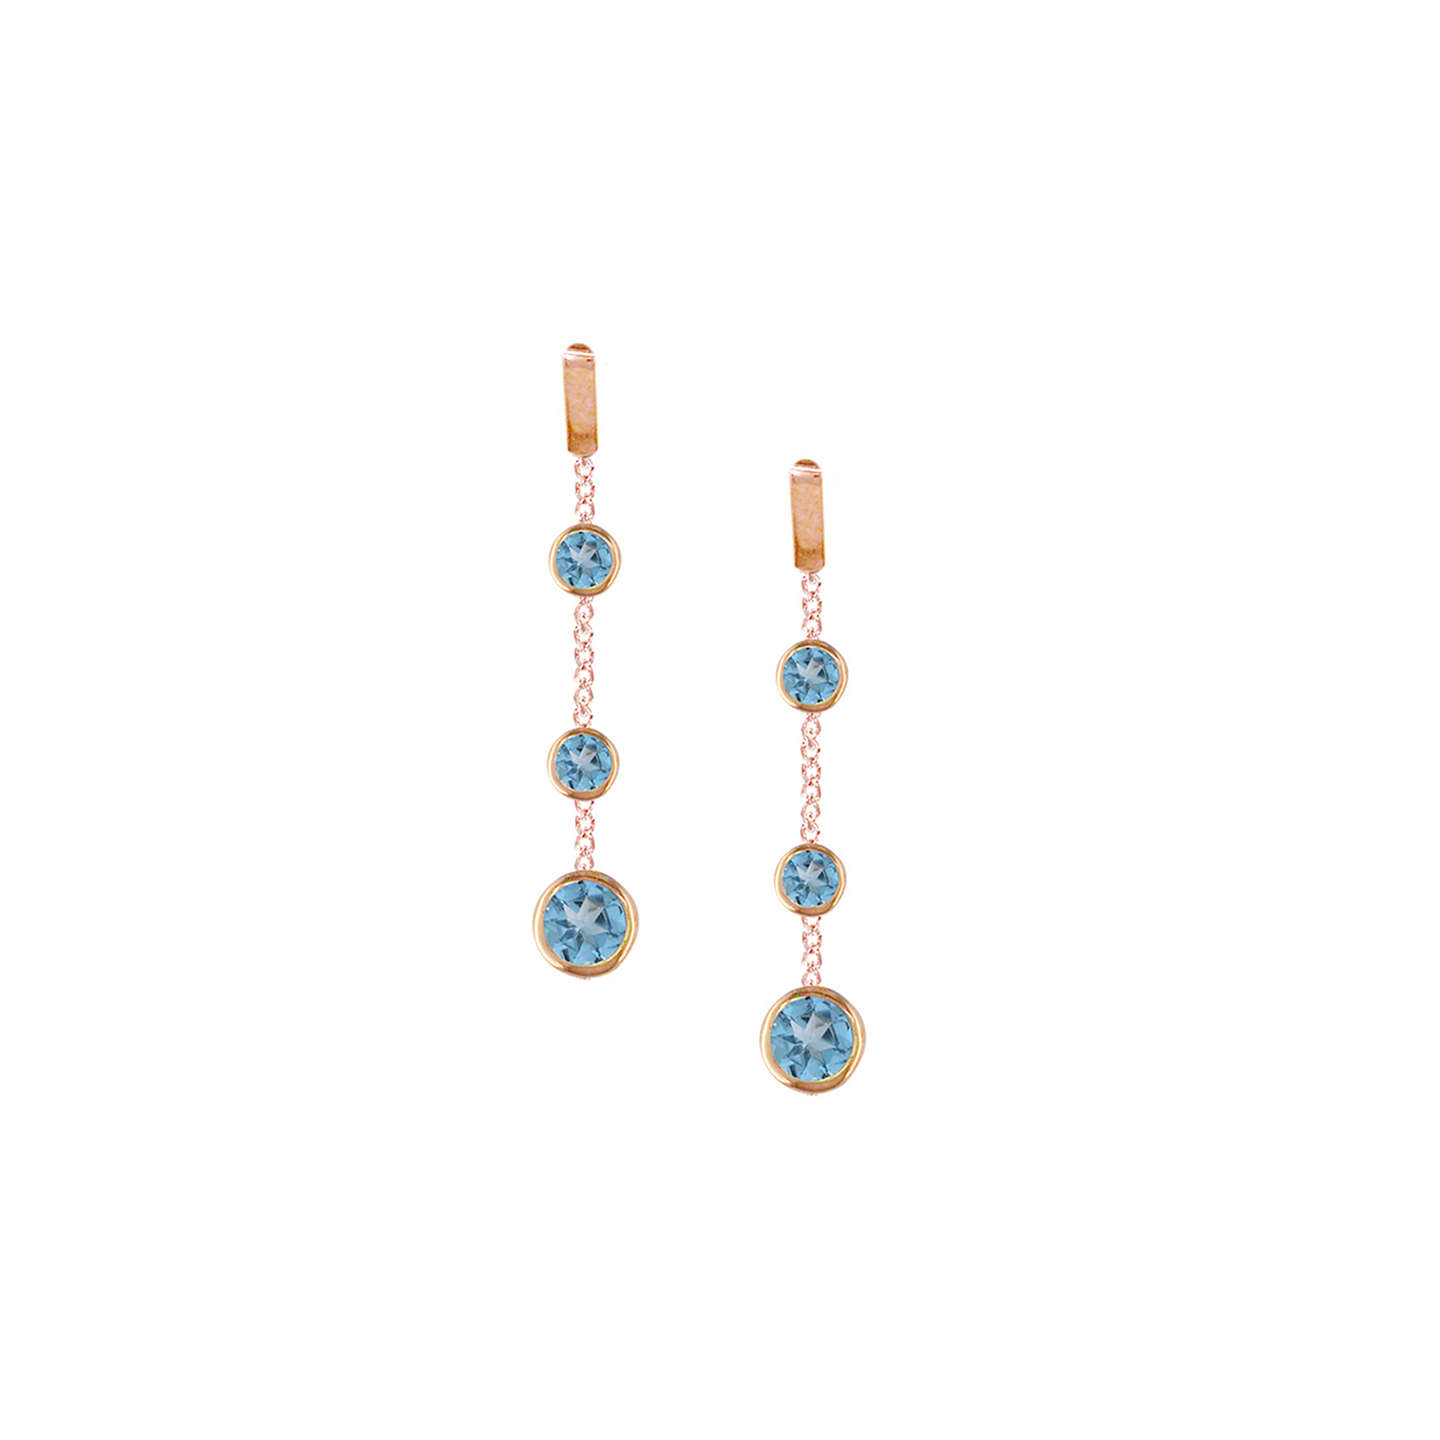 BuyLondon Road 9ct Rose Gold Pimlico Dew Drop Chain Earrings, Blue Topaz Online at johnlewis.com